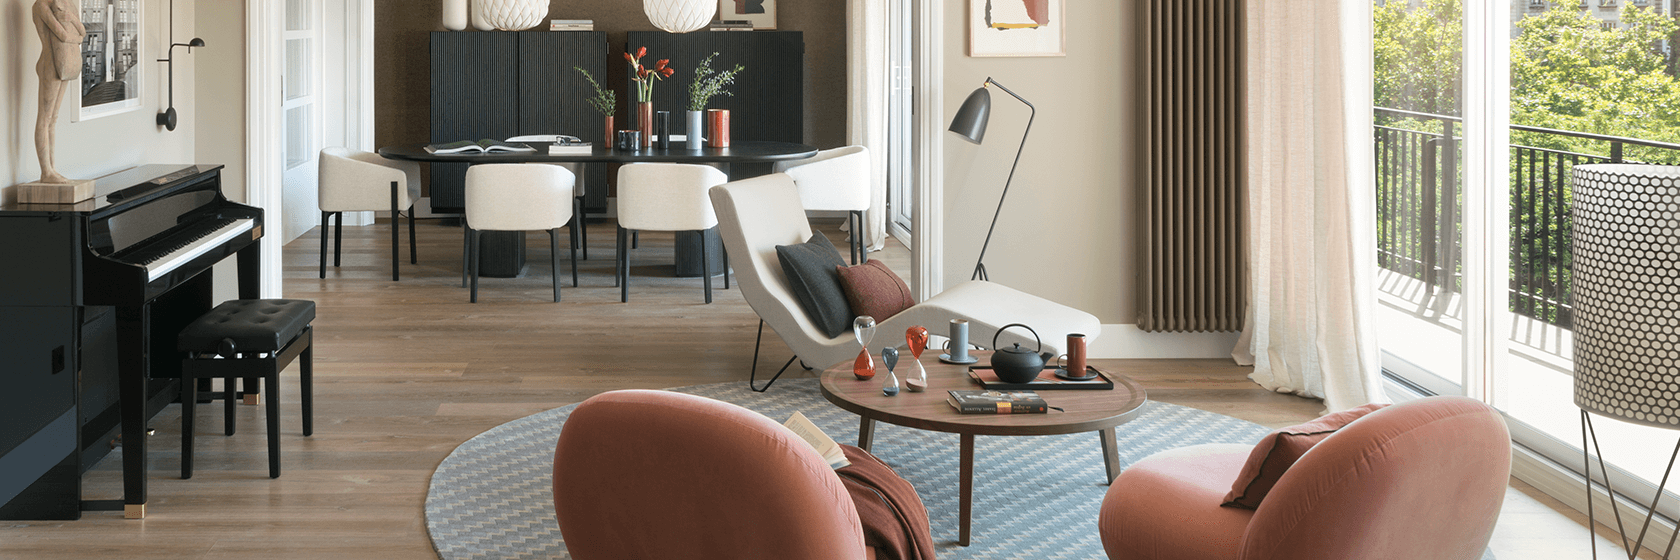 Our fall favorites 2019 | The Room Studio